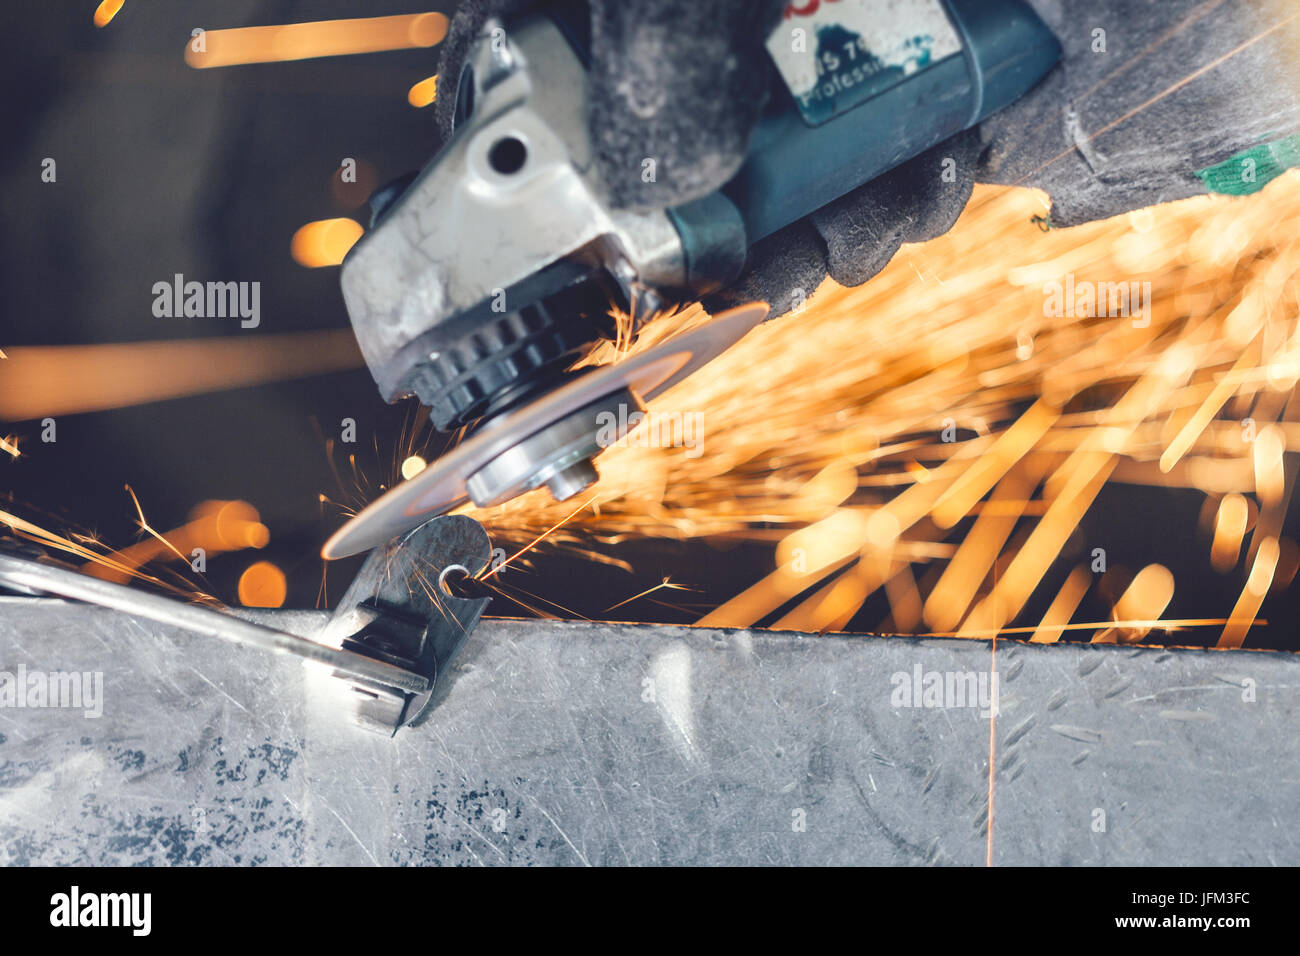 Cutting of curlicue hook using hand angle grinder and spreading sparks all around - Stock Image